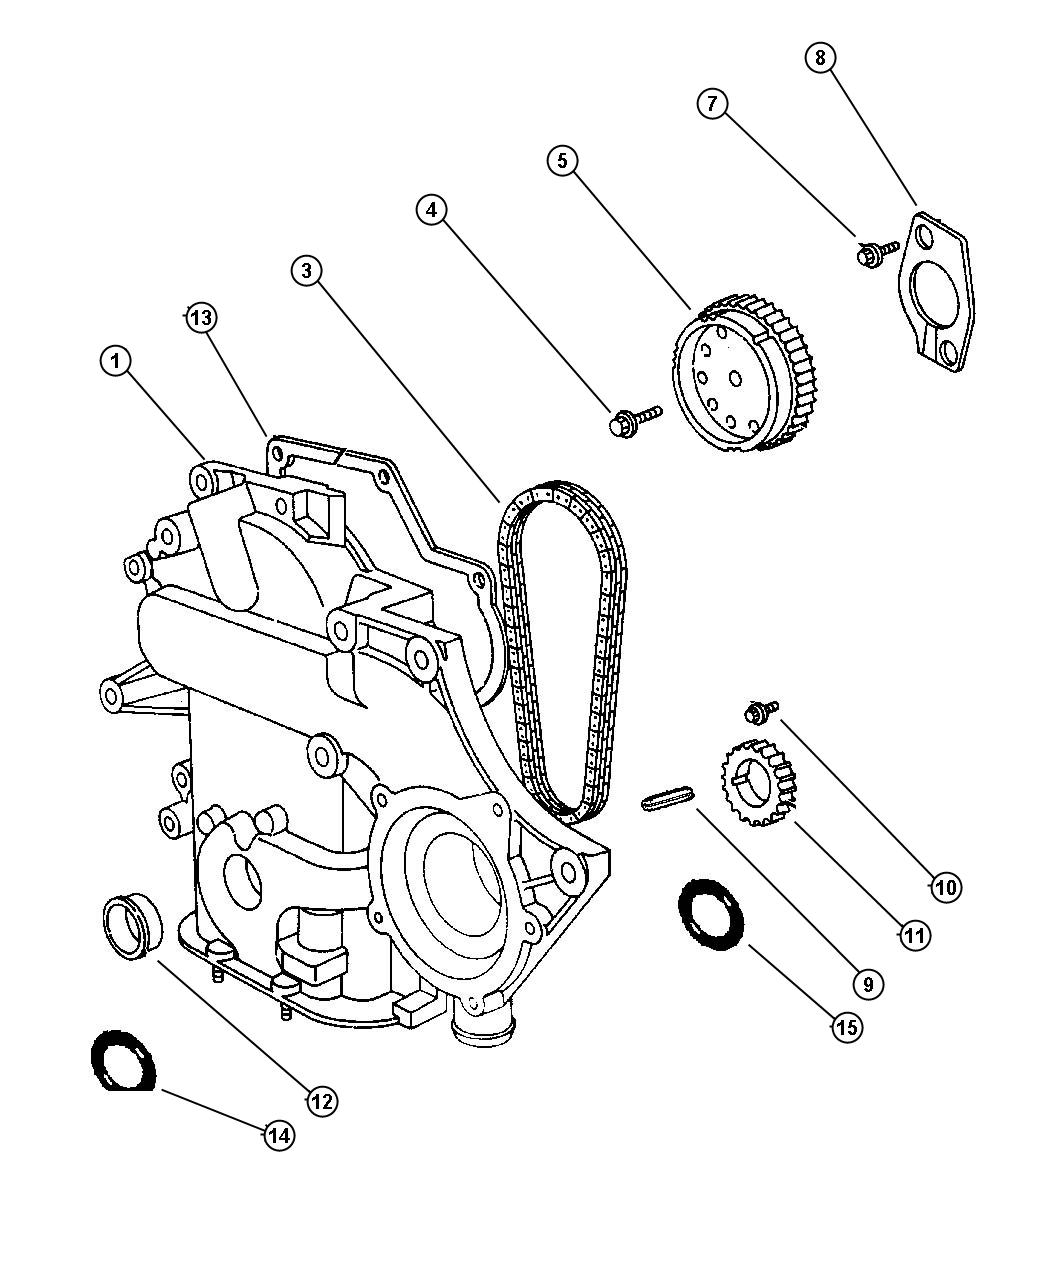 Plymouth Voyager Timing Chain And Cover 3 8l Egh Engine